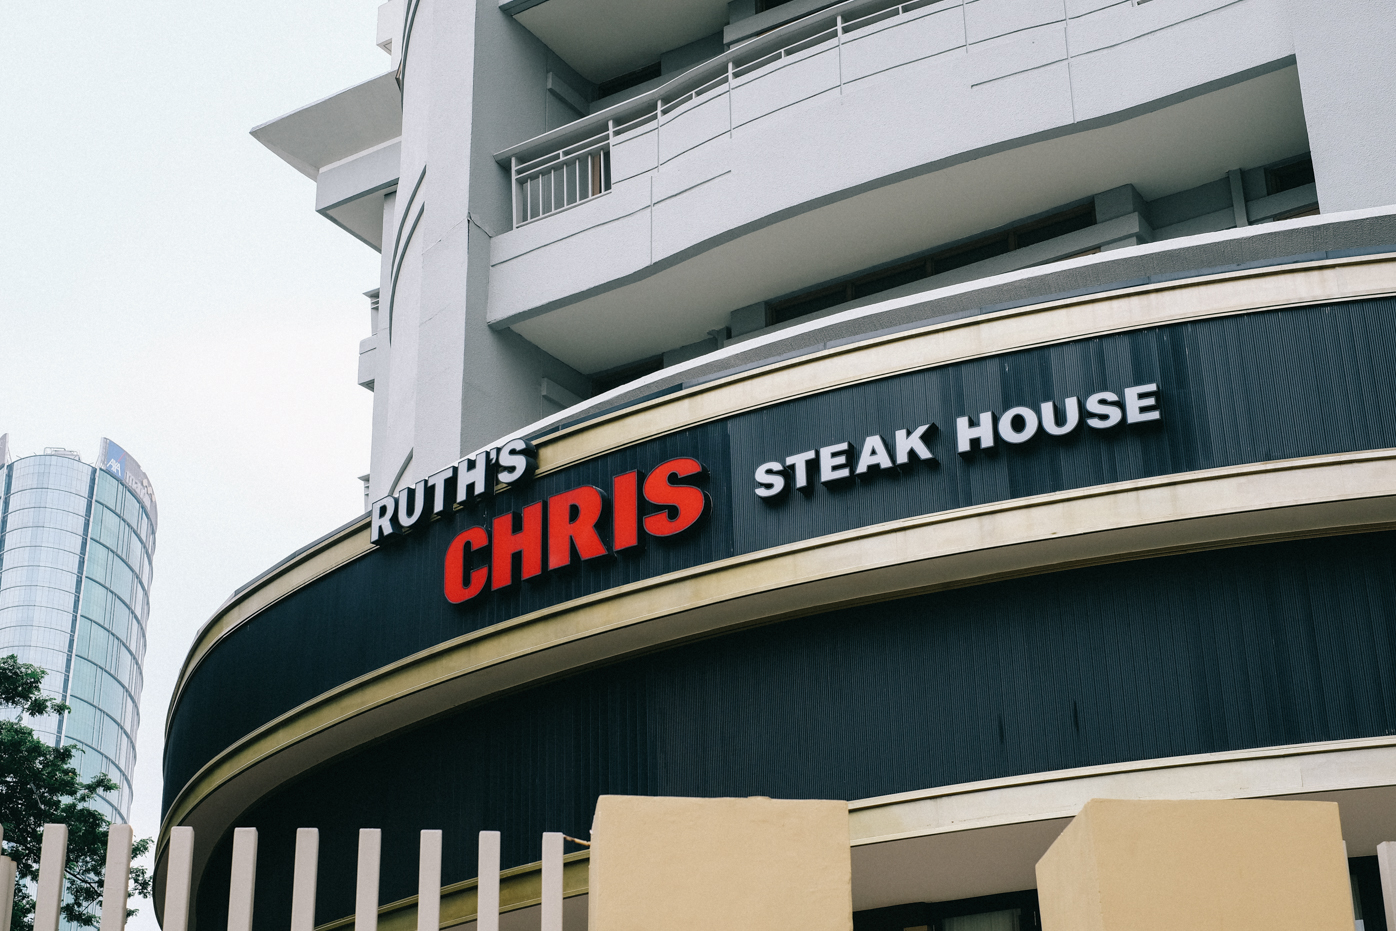 Ruth Chris Steak House First Came To The Scene In 1965 At New Orleans By Founder Herself Fertel More Than 5 Decades Later Vision Is Still